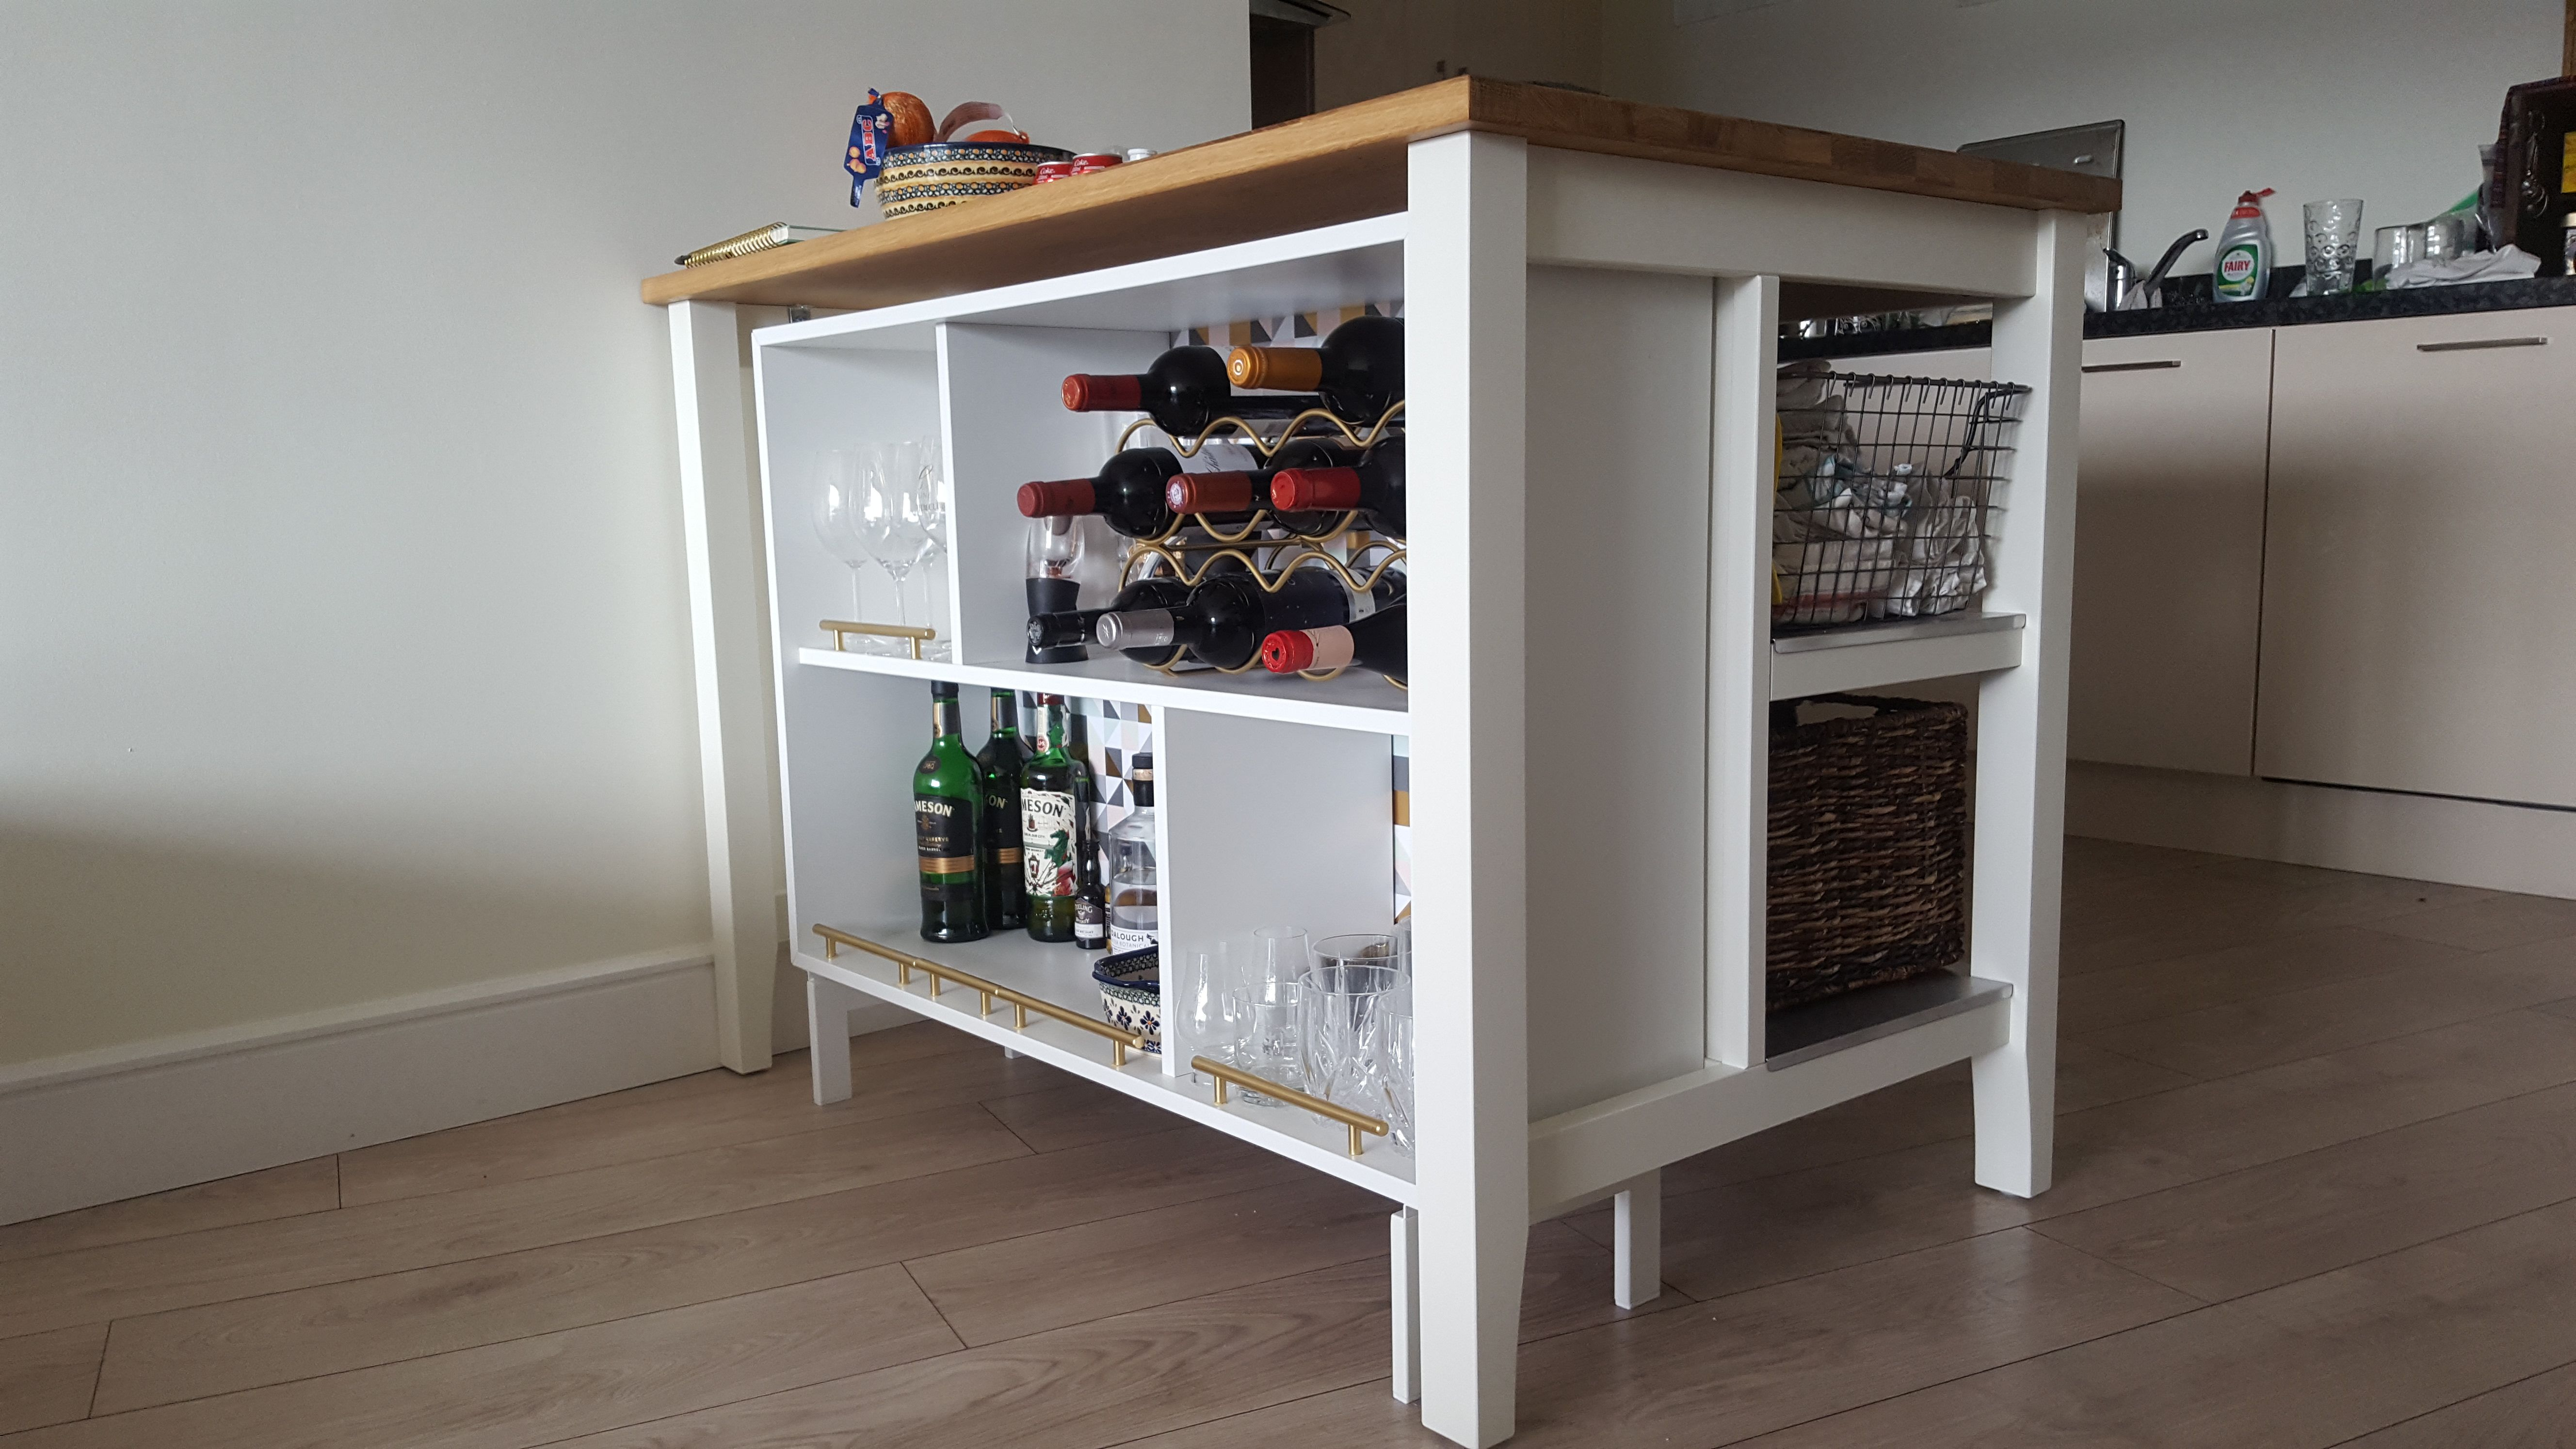 Ikea Valje Shelf Unit Hacked And Customized Into Bar Cabinet And